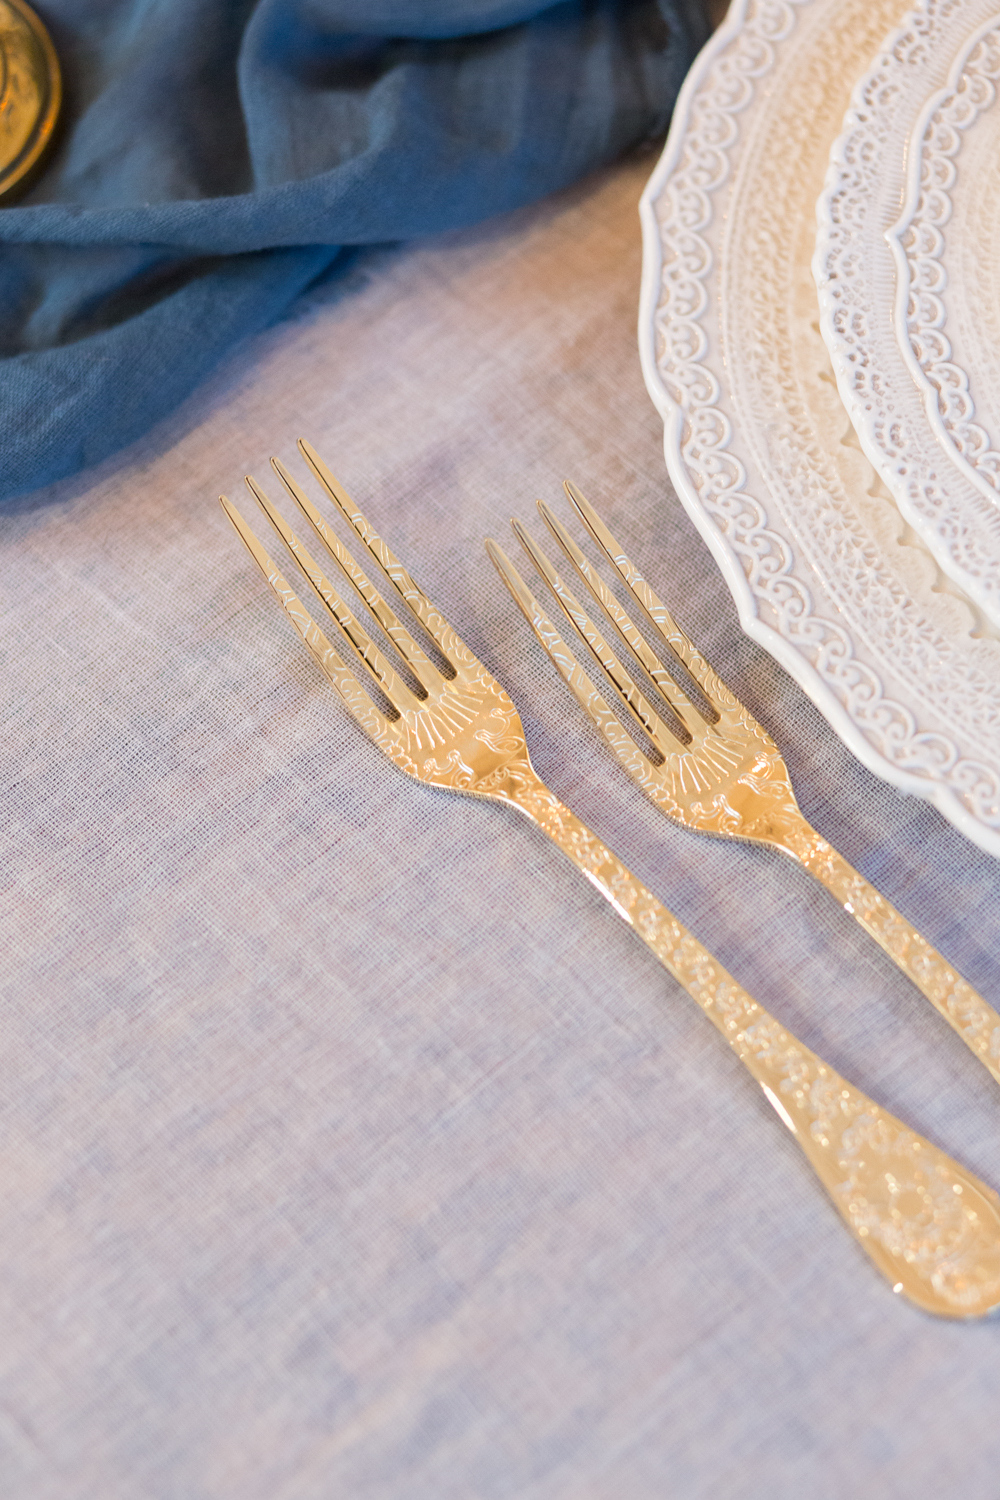 Gold Cutlery: From 50p